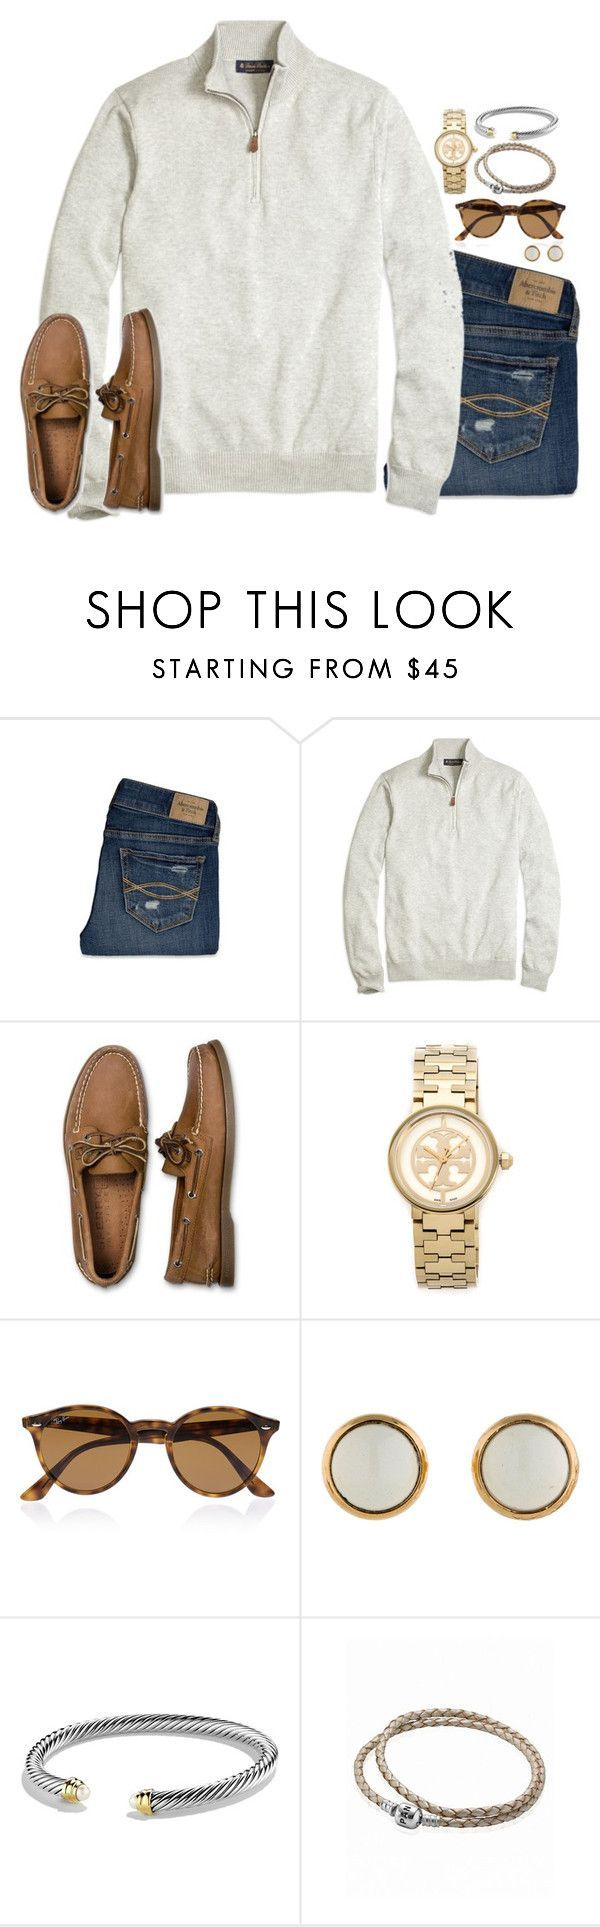 """""""I must've called a thousand times, to tell you I'm sorry for everything that I've done"""" by preppy-classy ❤ liked on Polyvore featuring Abercrombie & Fitch, Brooks Brothers, Sperry Top-Sider, Tory Burch, Ray-Ban, Hermès, David Yurman and Pandora"""